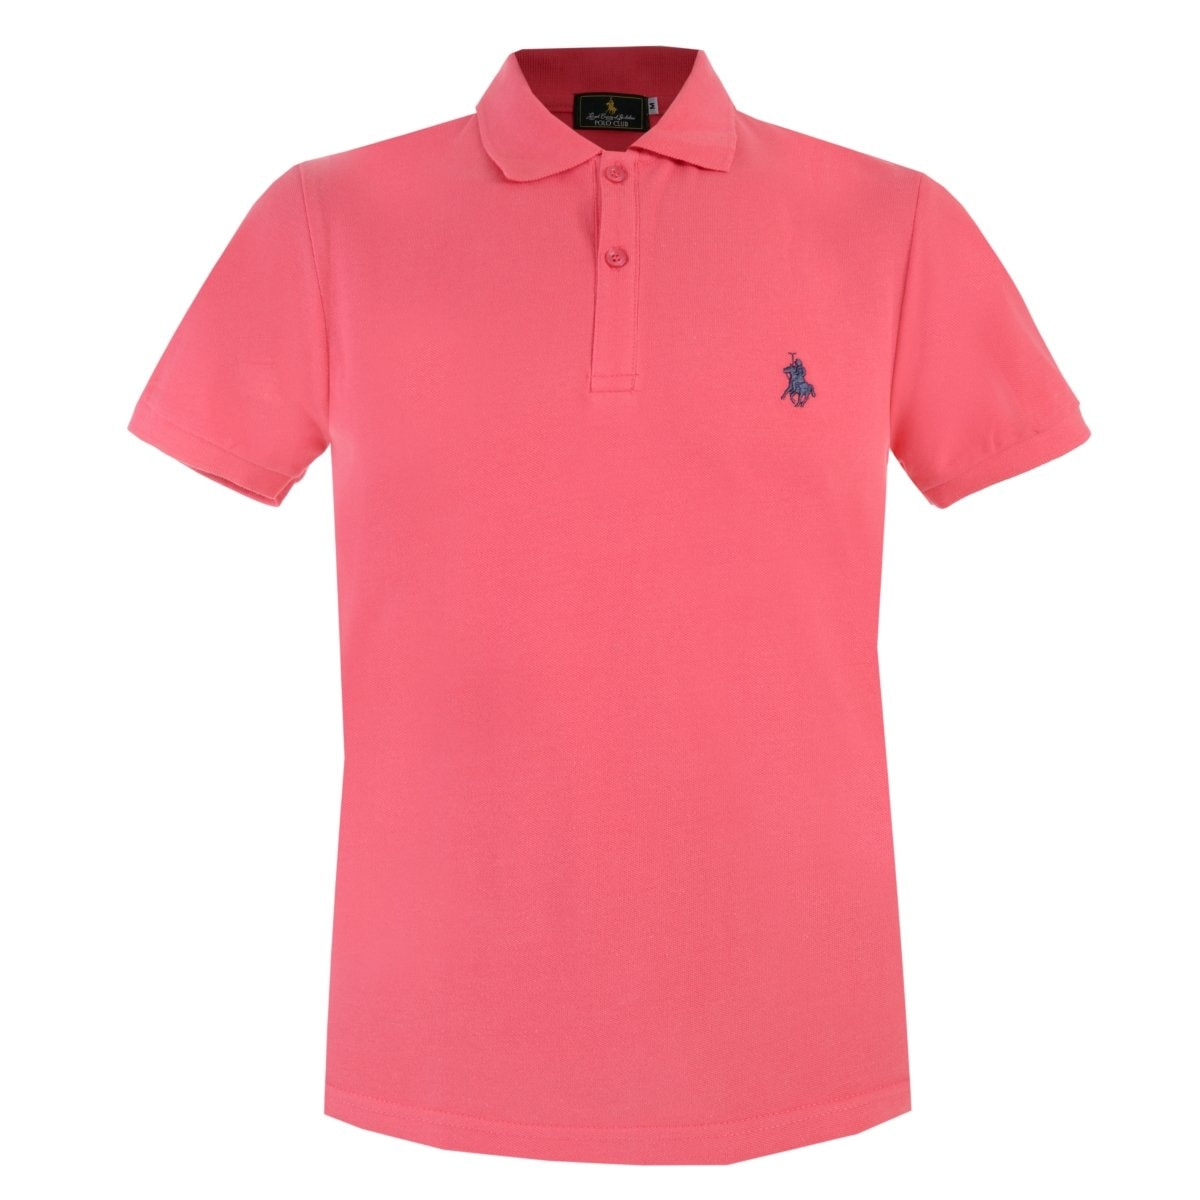 Playera Polo Piqué Polo Club